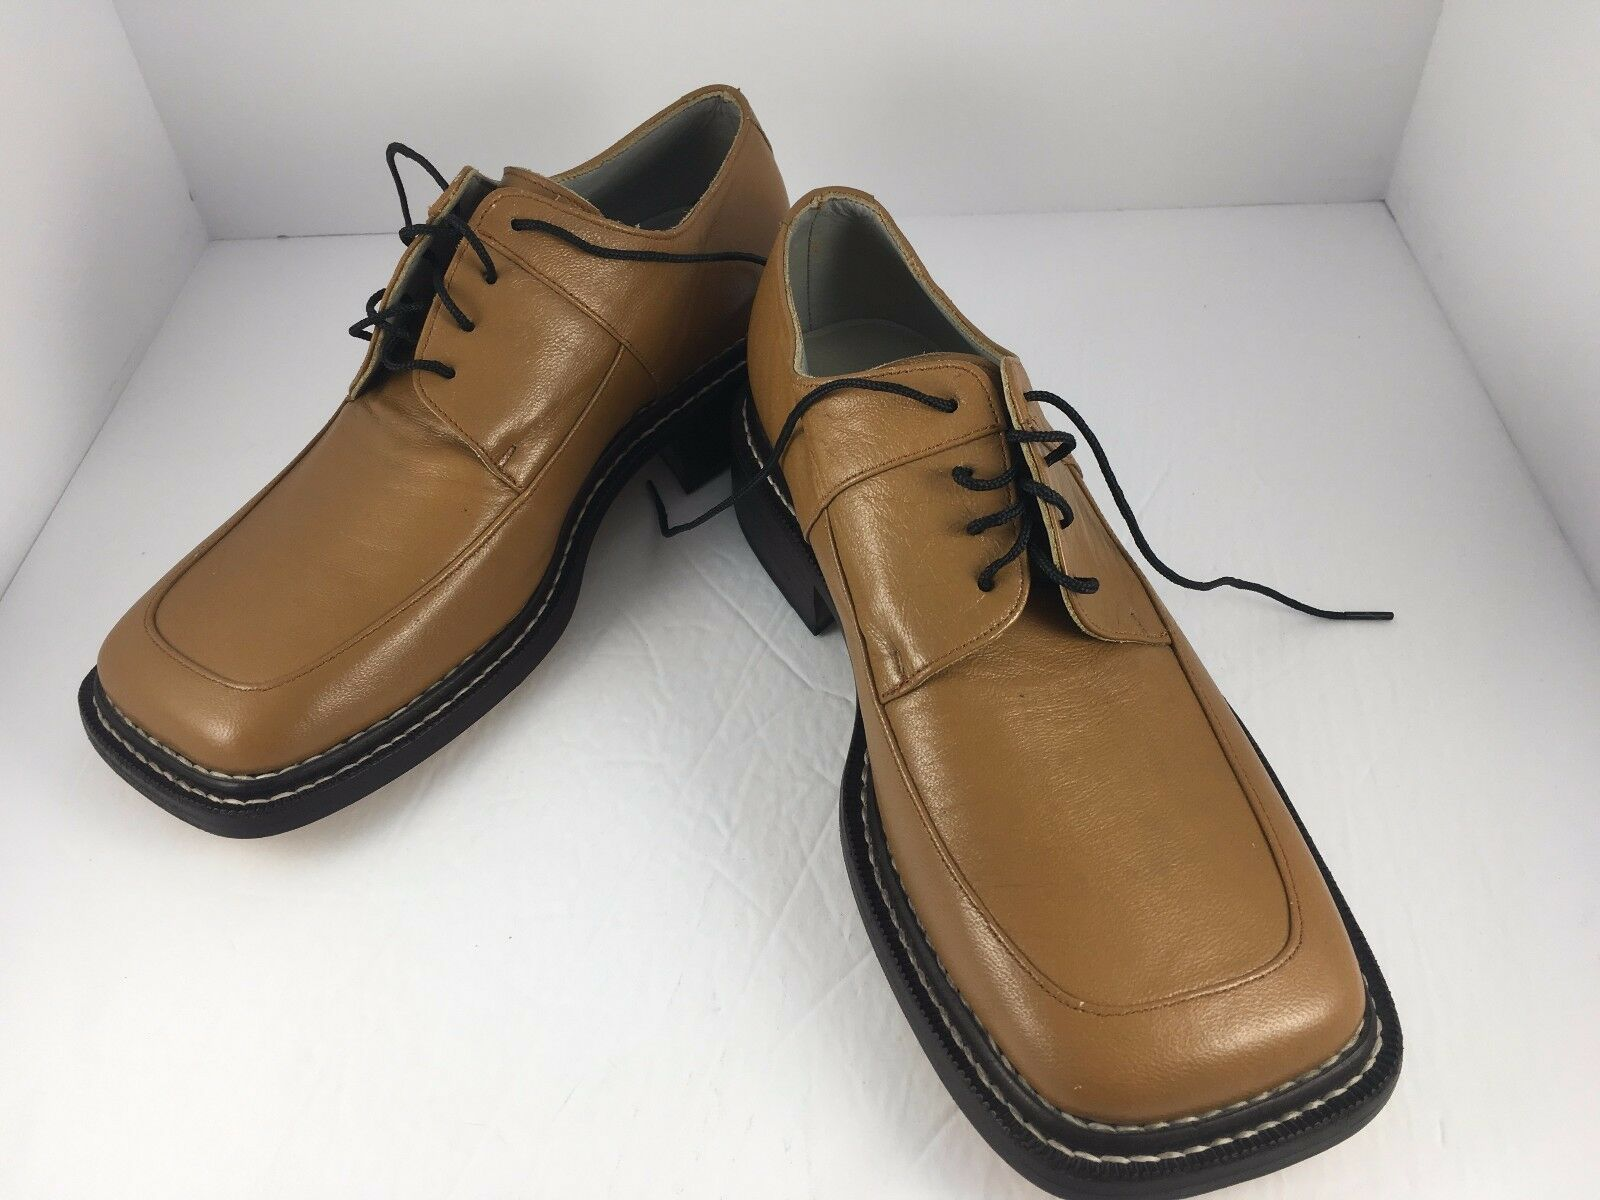 Bespoke Tan Leather Benchmade Handmade Broad Square Toe schuhe Leather Sole Sz 8D